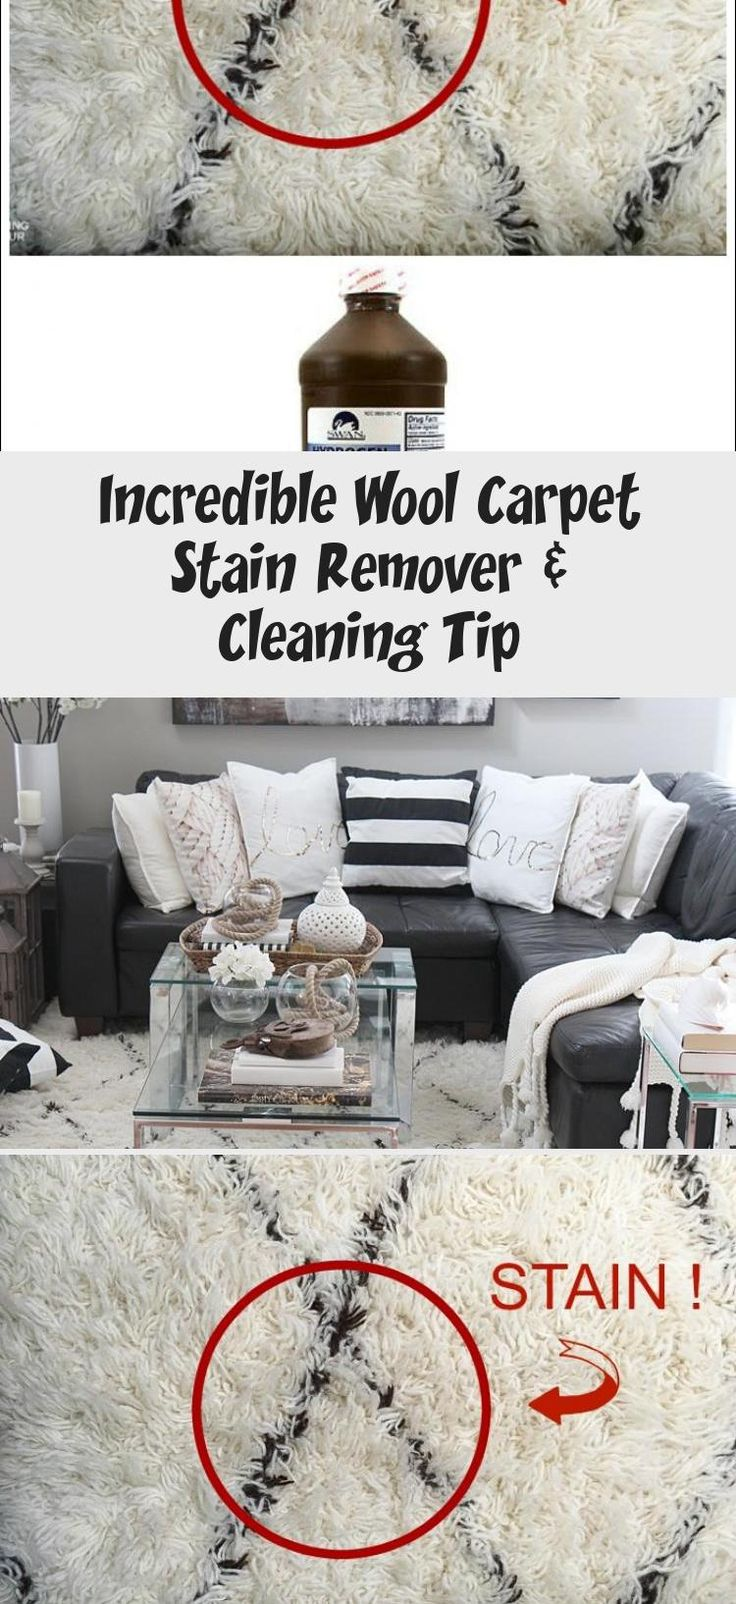 Incredible Wool Carpet Stain Remover Cleaning Tip In 2020 Stain Remover Carpet How To Clean Carpet Carpet Stains